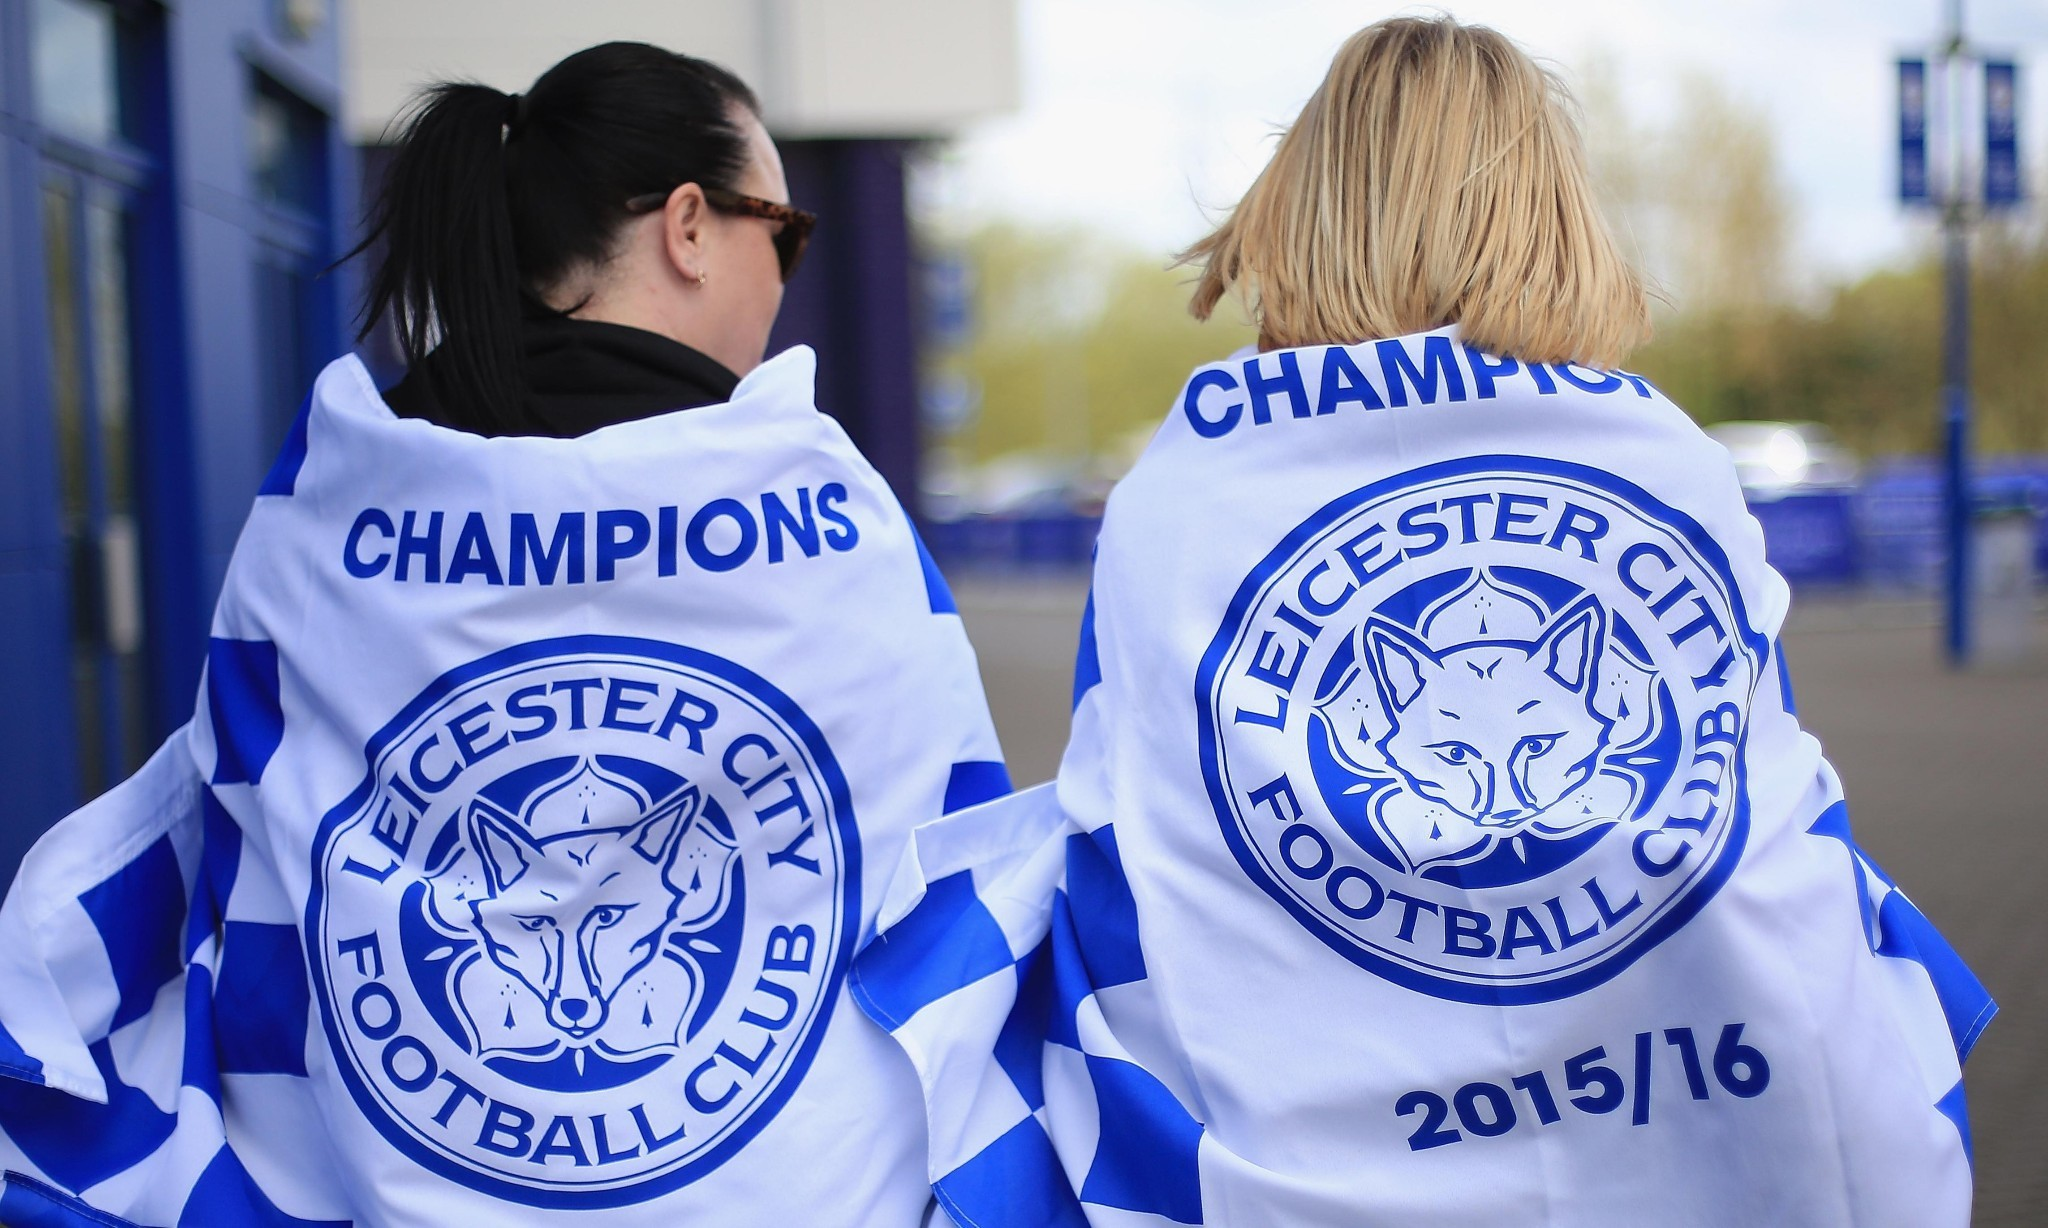 Relegation would not taint Leicester's title win, it would add to the legend